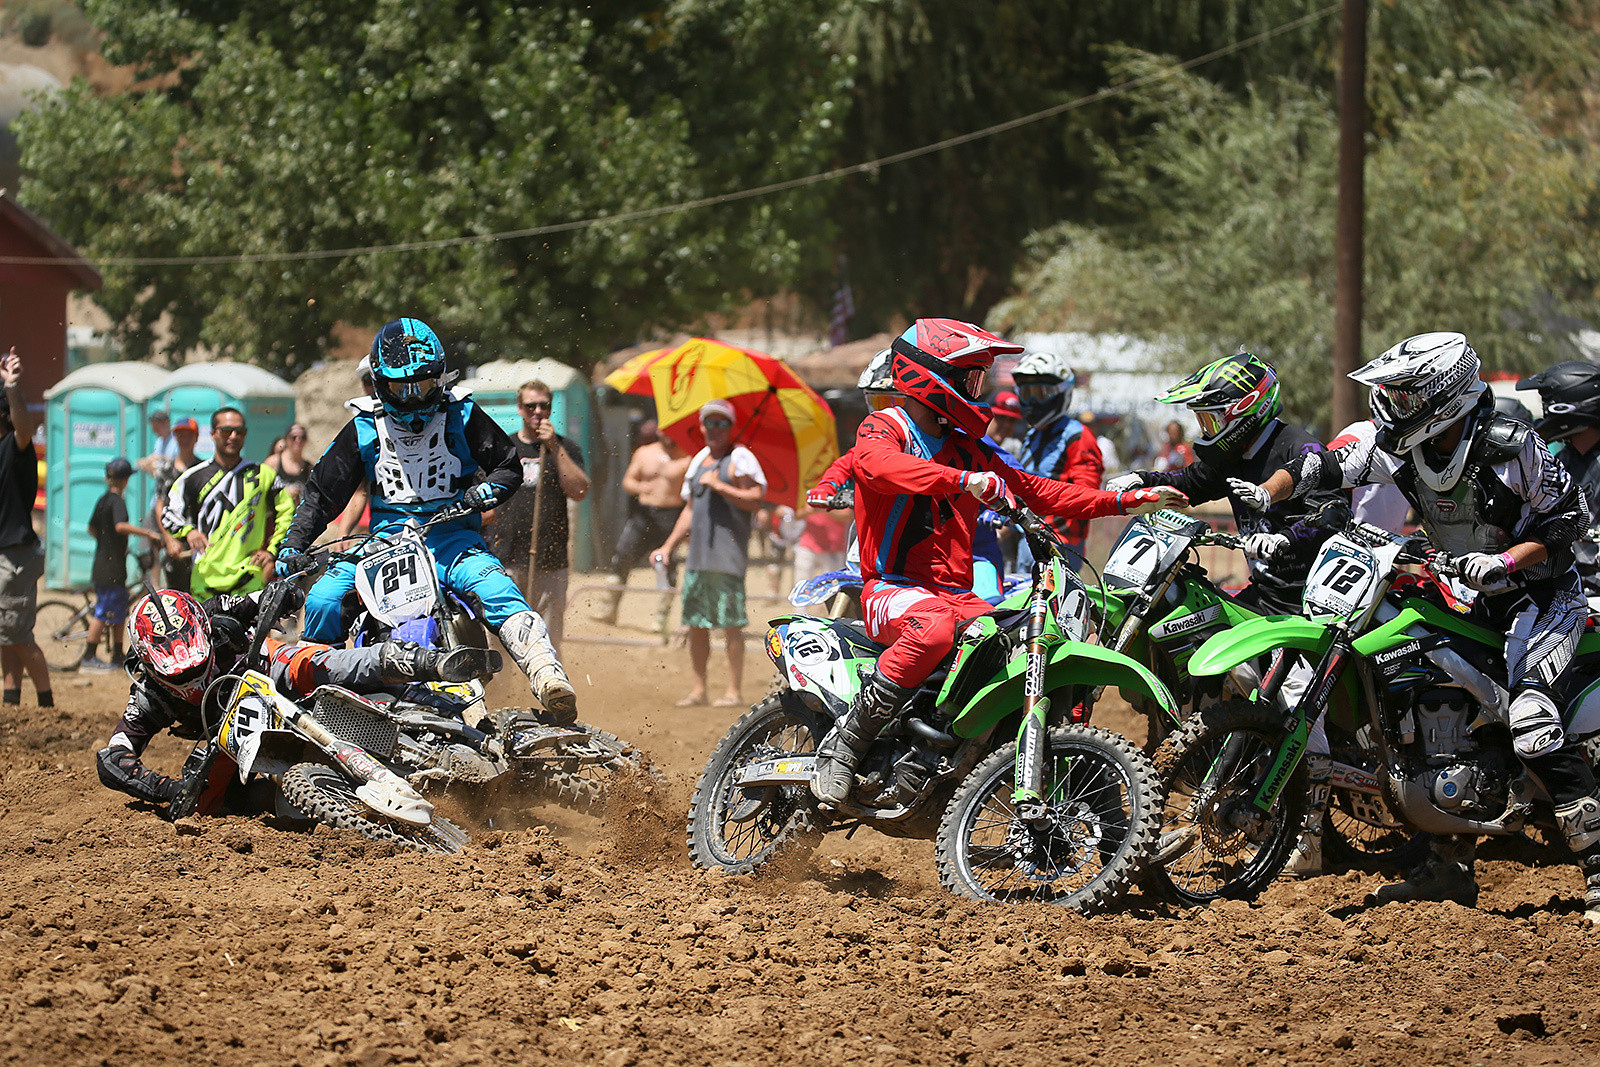 Each team in both the pro and industry classes has two riders, who trade off laps. There's always some chaos during the exchanges, though the format was modified later in the day so that riders didn't have to tag each other on the exchange. This was during the first industry moto.